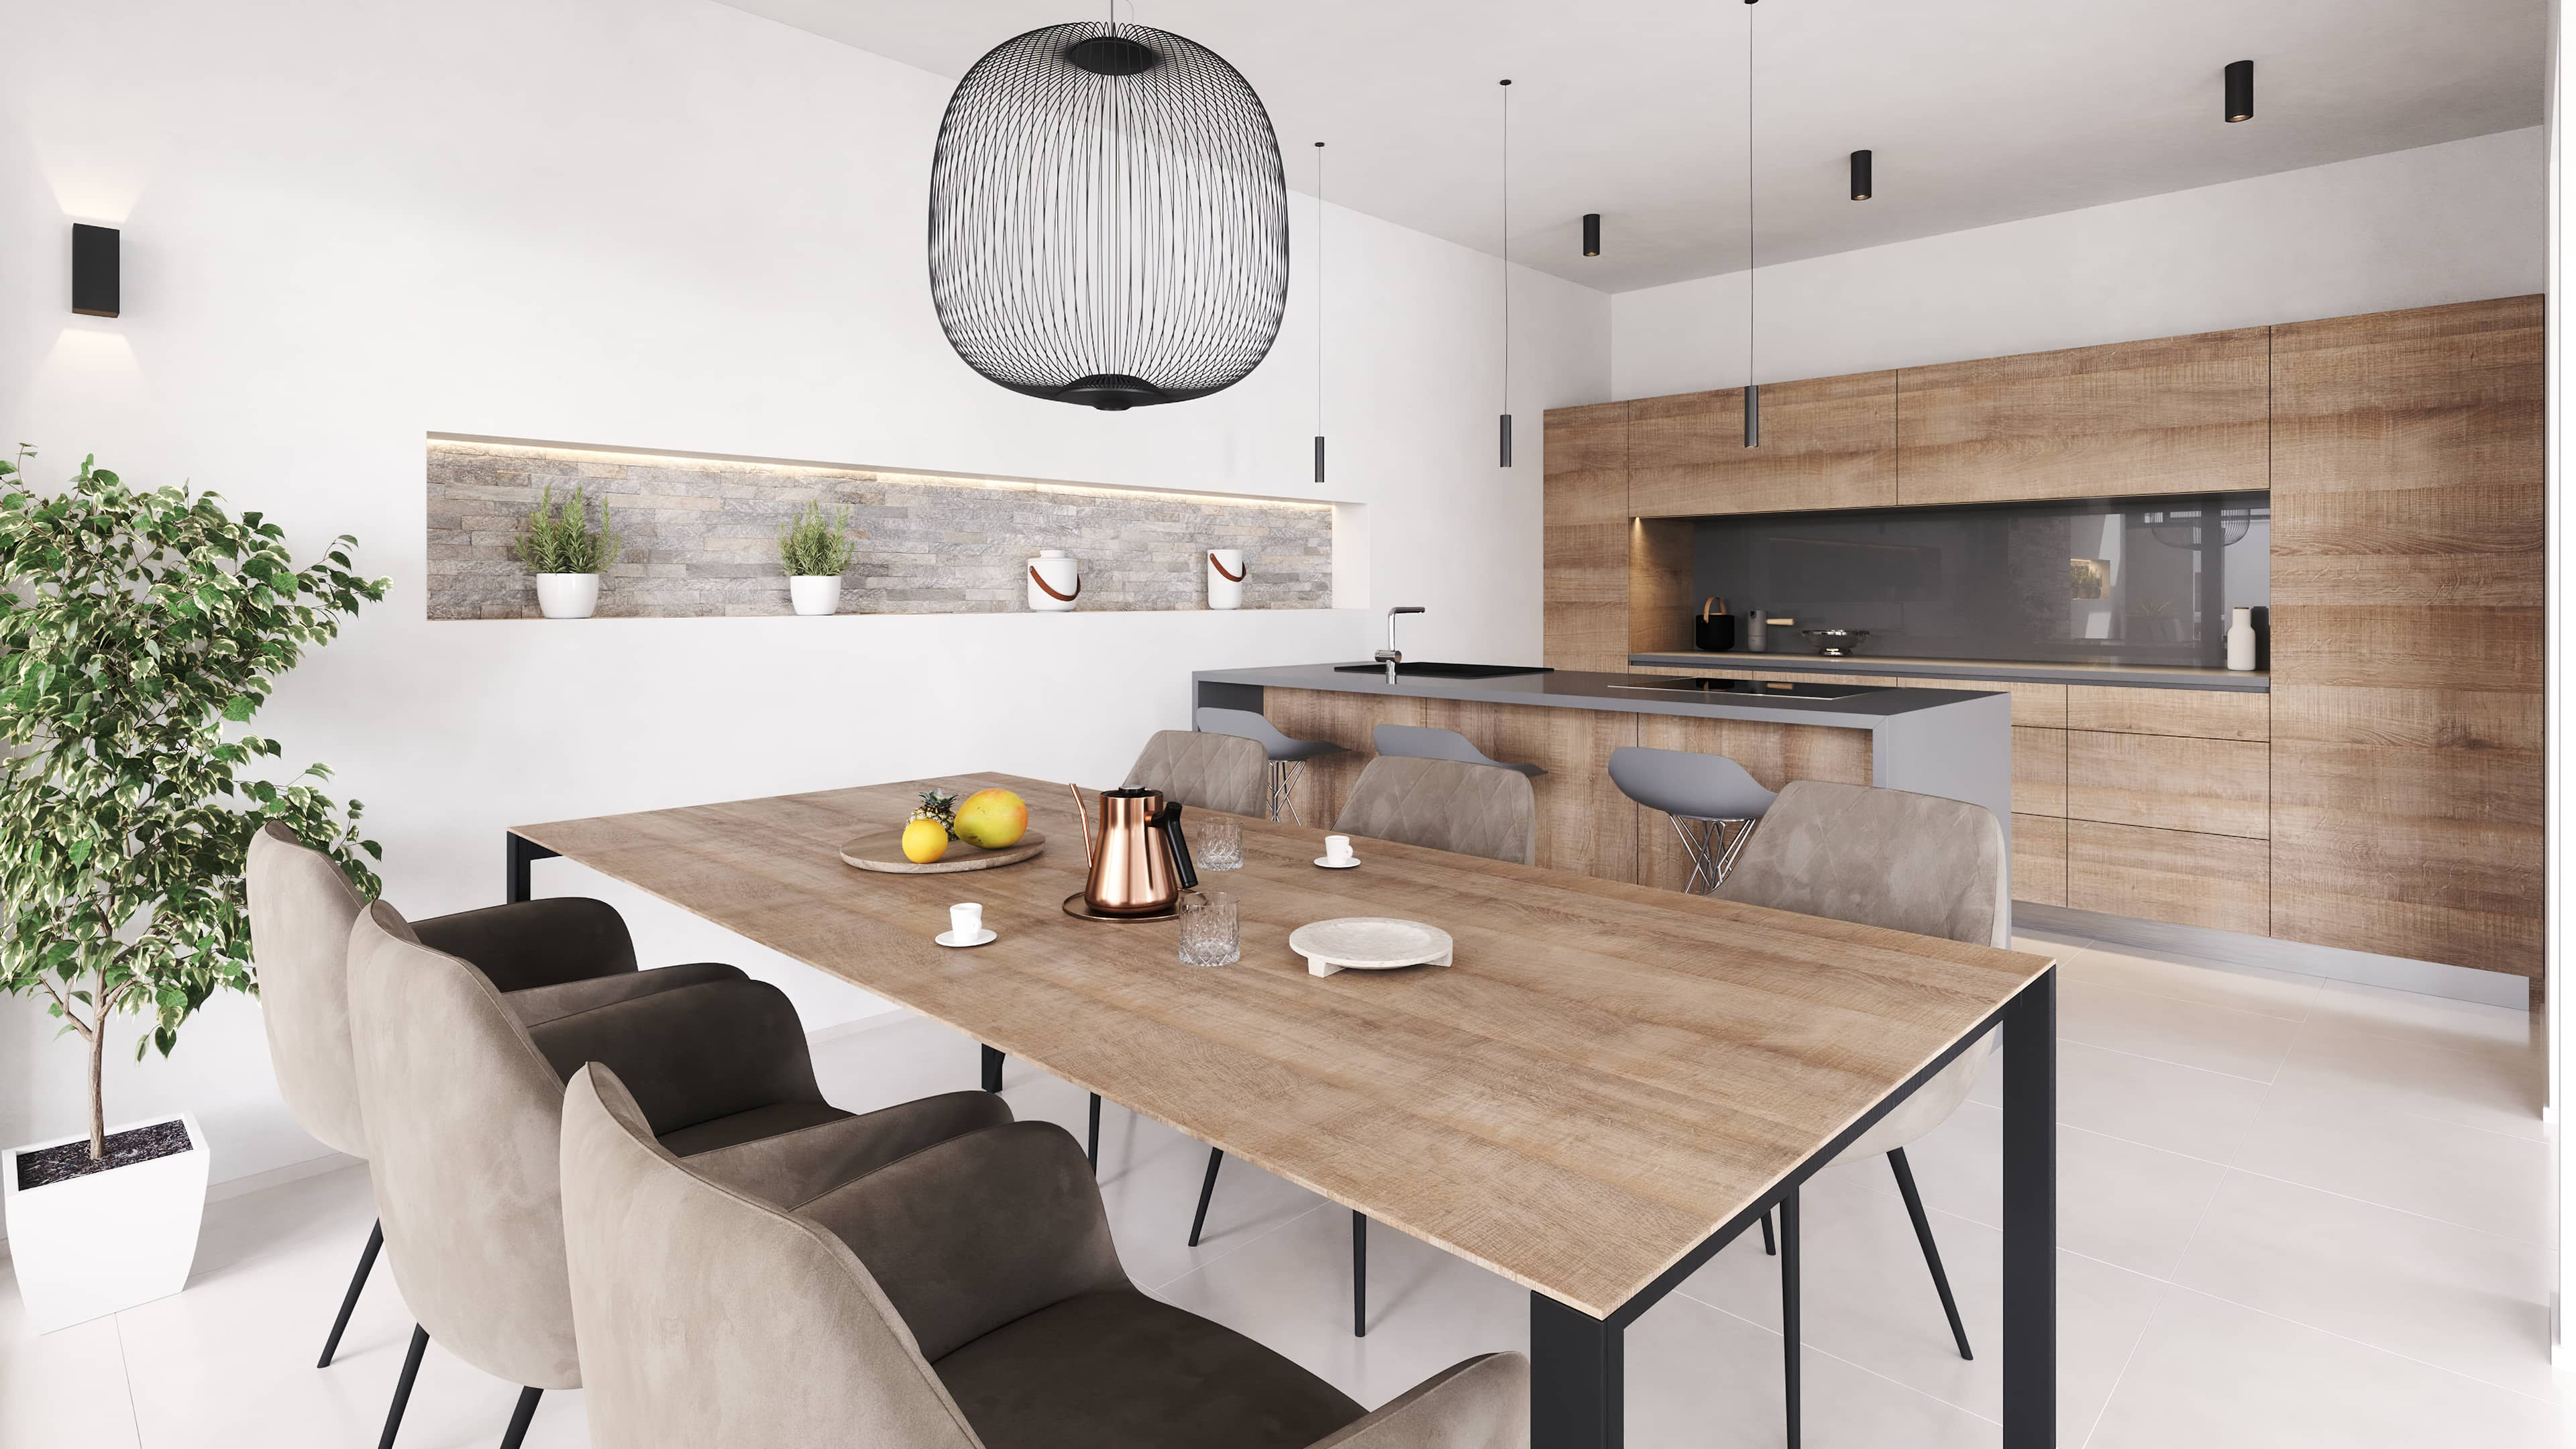 San Lorenzo kitchen render